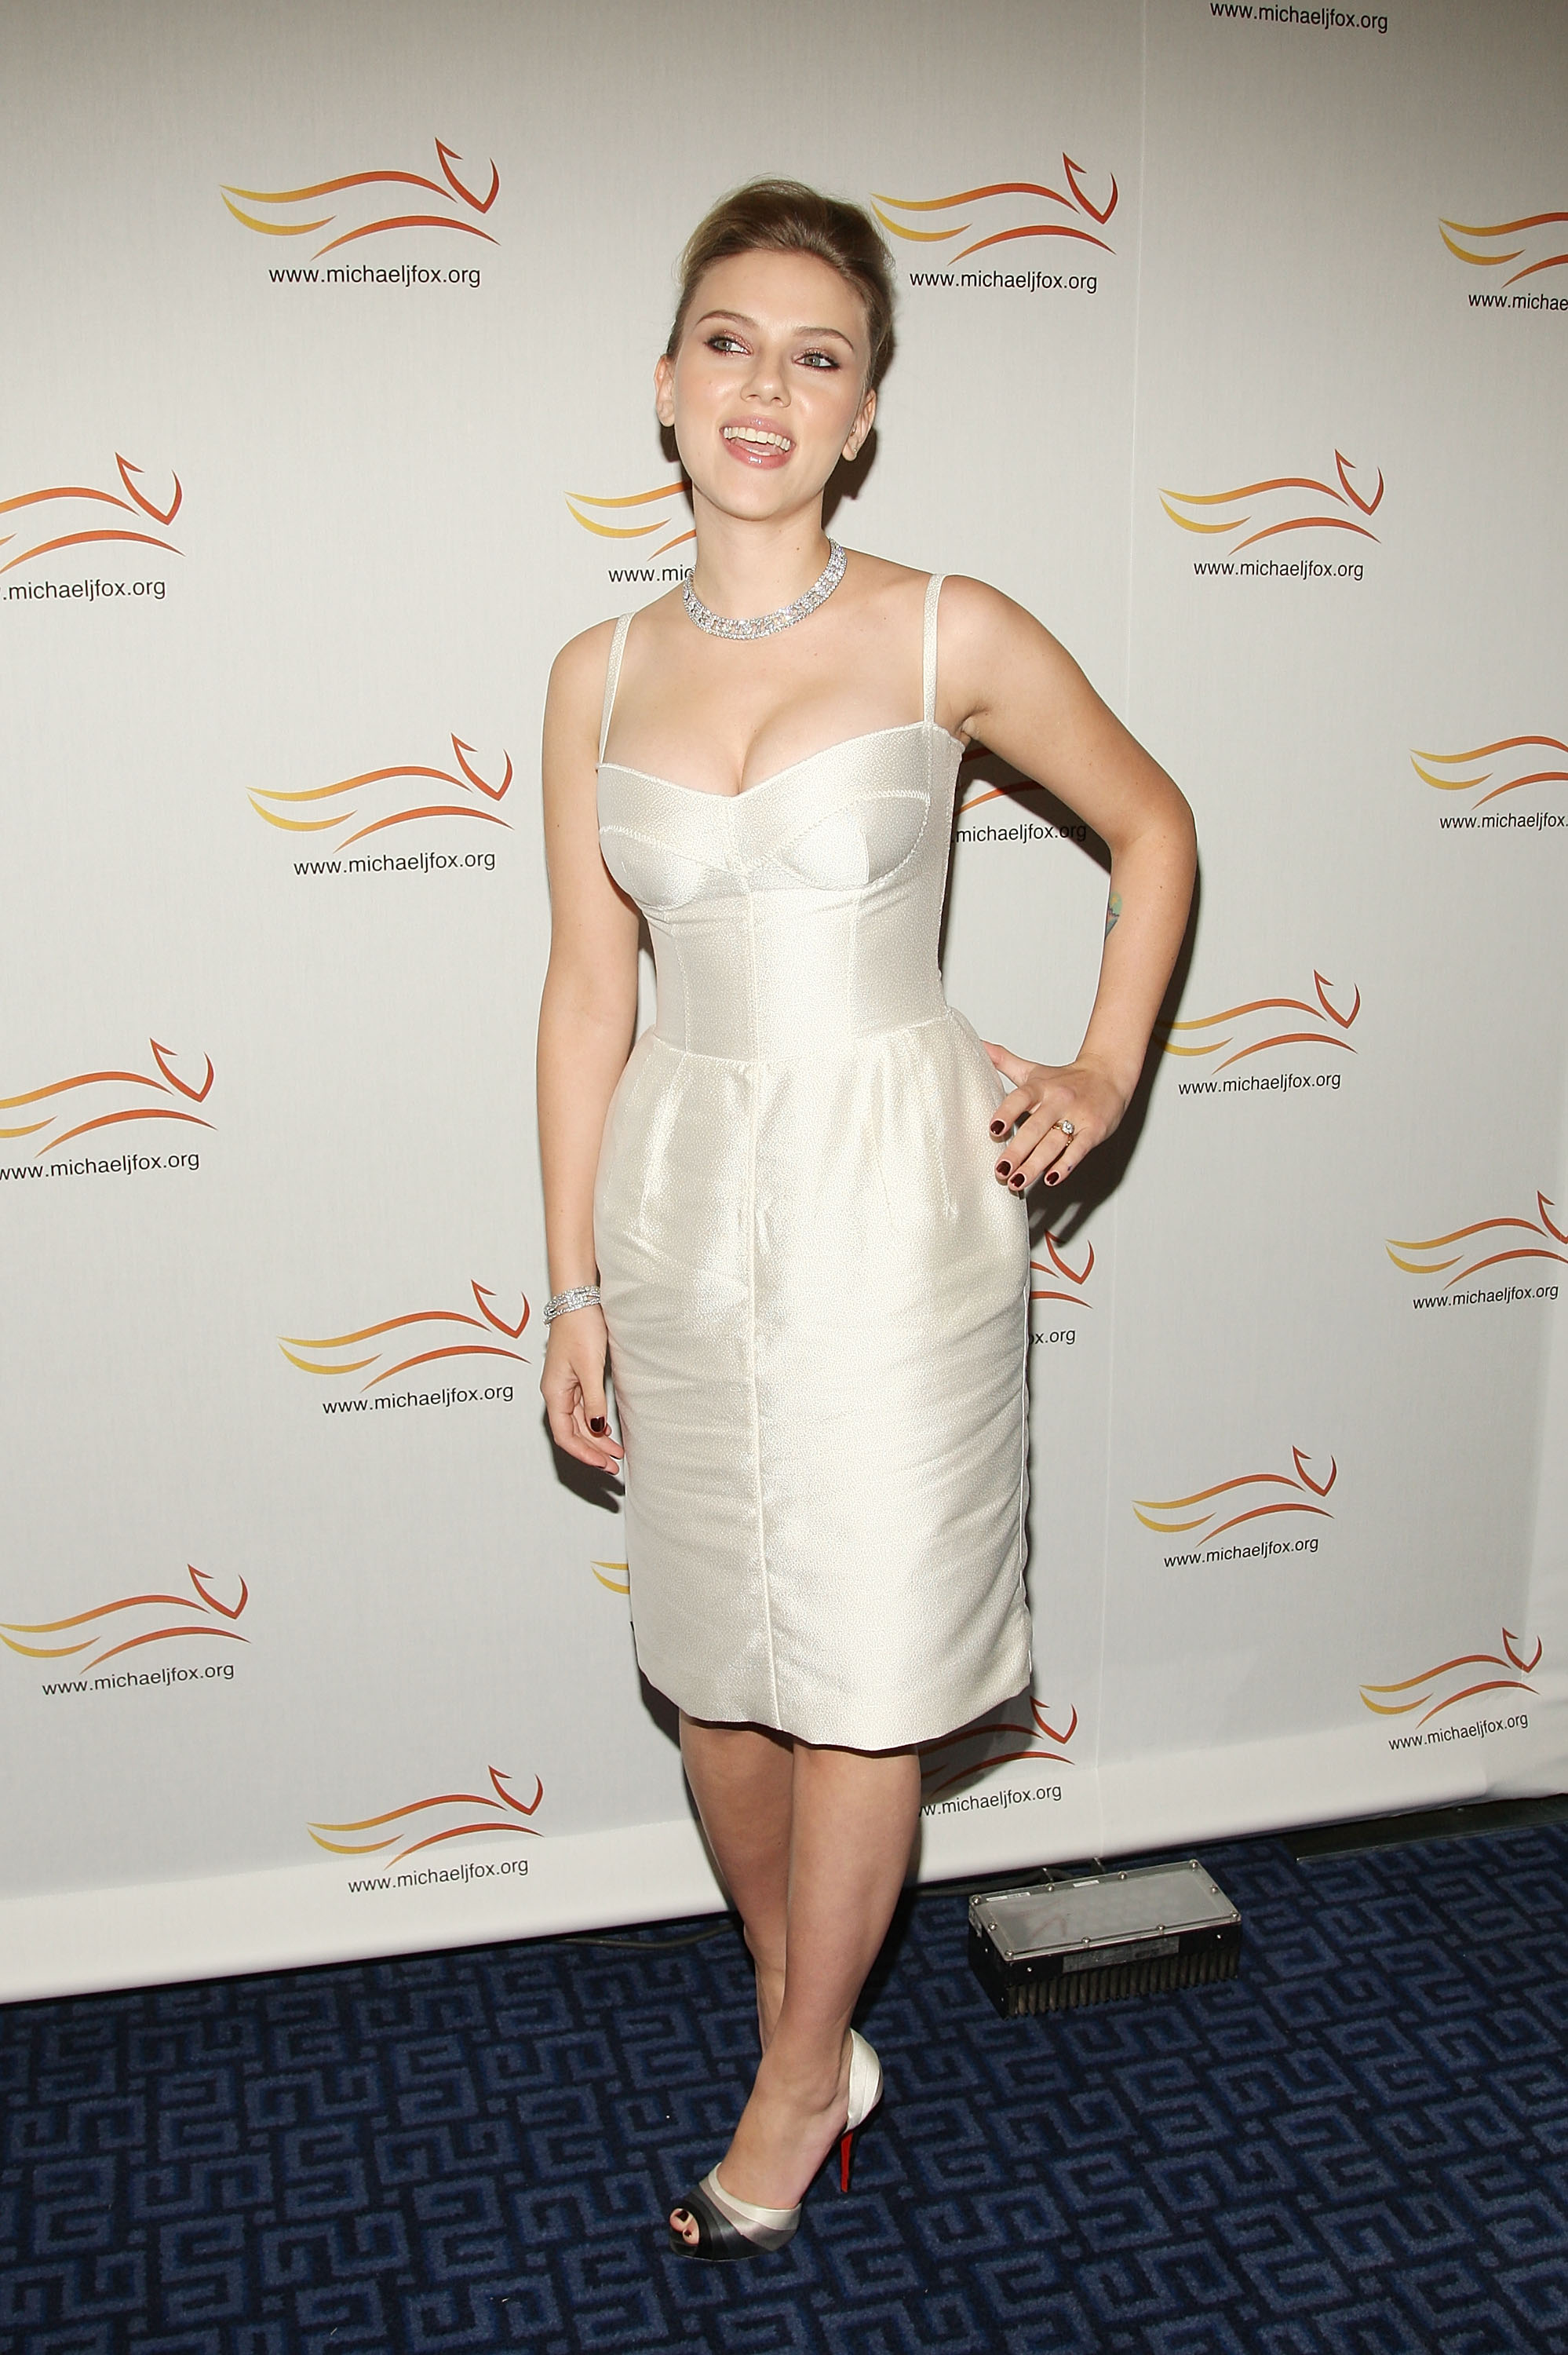 54475_Celebutopia-Scarlett_Johansson-A_Funny_Thing_Happened_on_the_Way_to_Cure_Parkinsons-10_122_1131lo.jpg